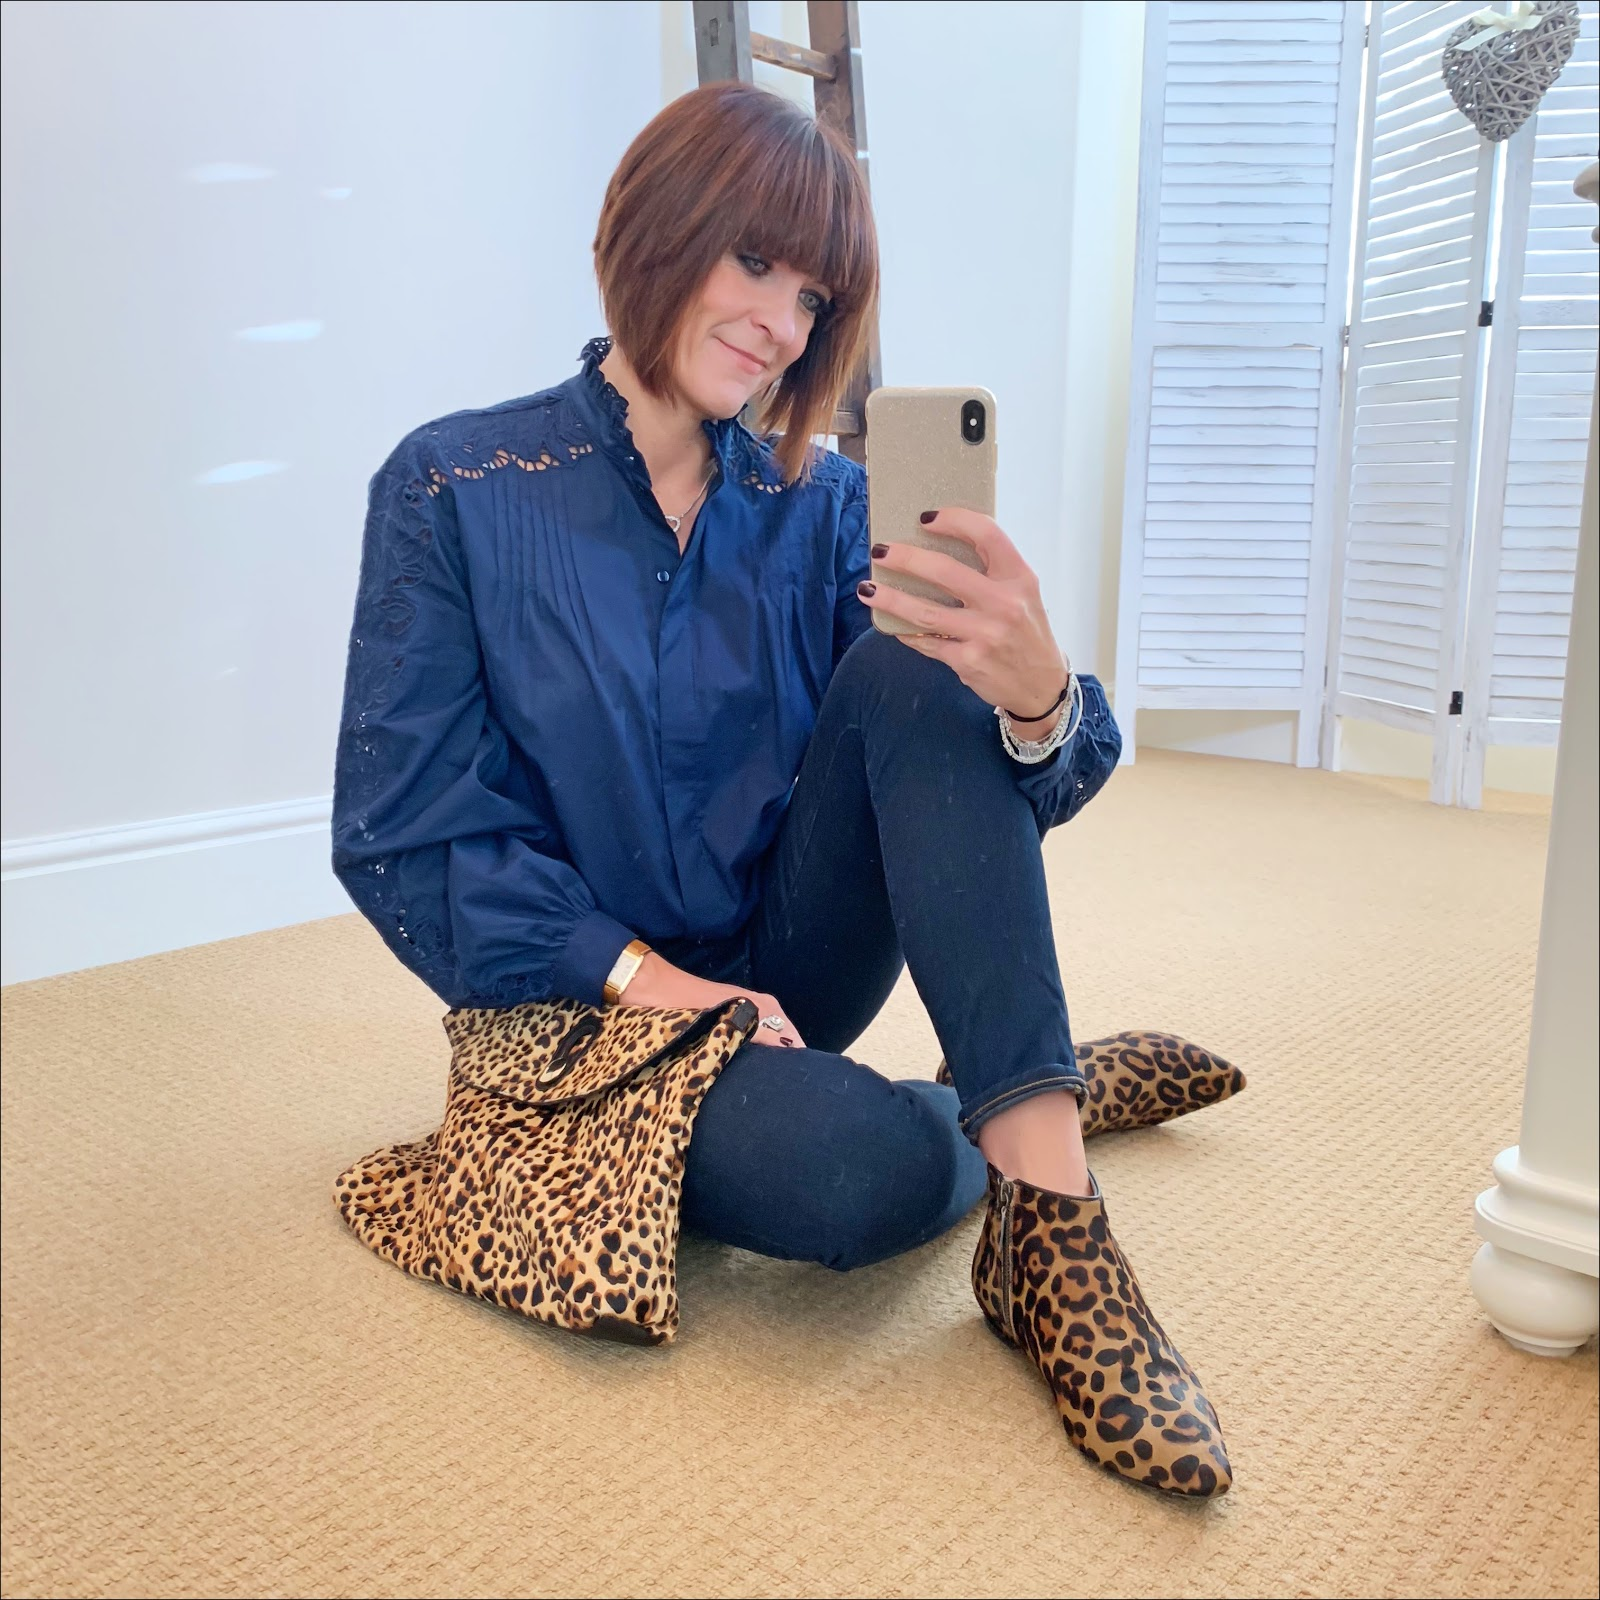 my midlife fashion, h and m embroidered blouse, j crew 8 inch toothpick jeans, boden leopard print ankle boots, zara leopard print bag